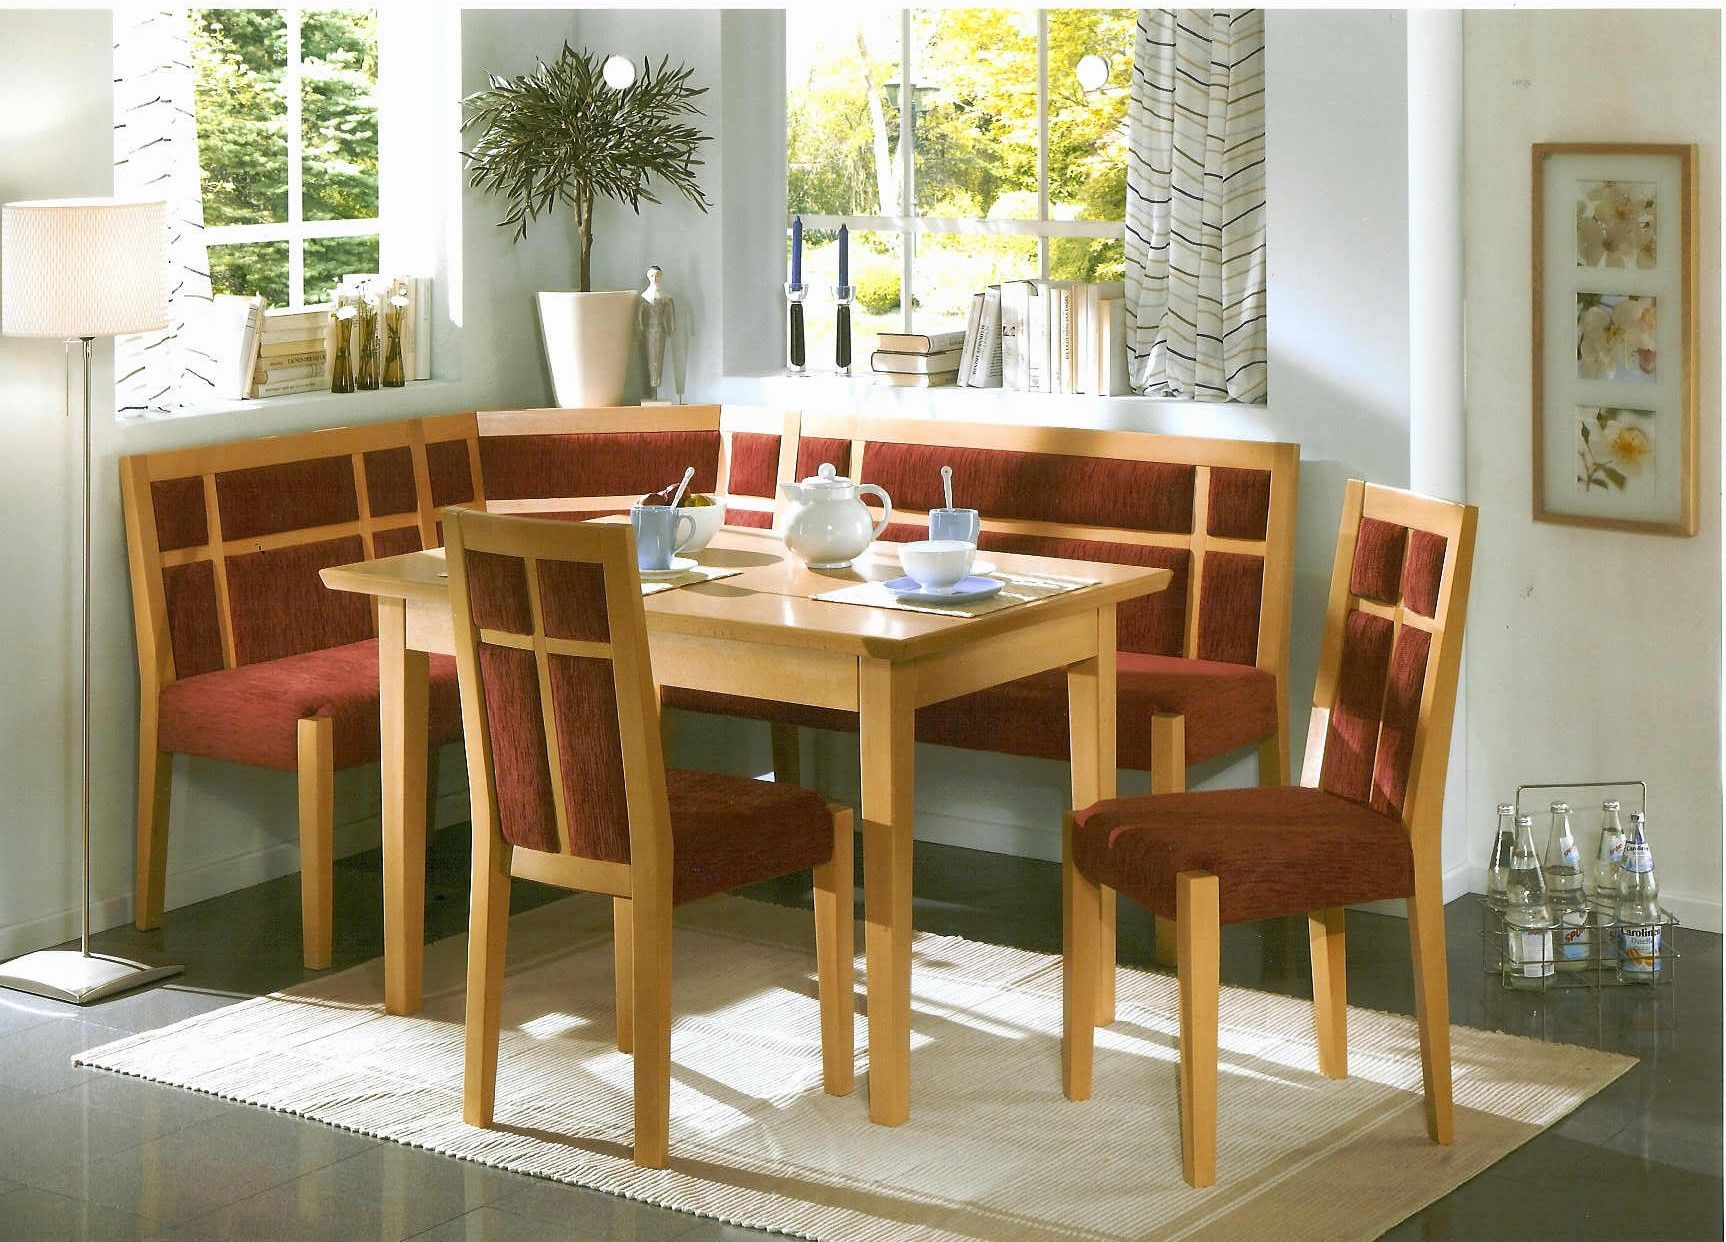 Solid Wood Farmhouse Stl Kitchen Nook Corner Bench Booth Dining Set - Kitchen table and chairs set with booth